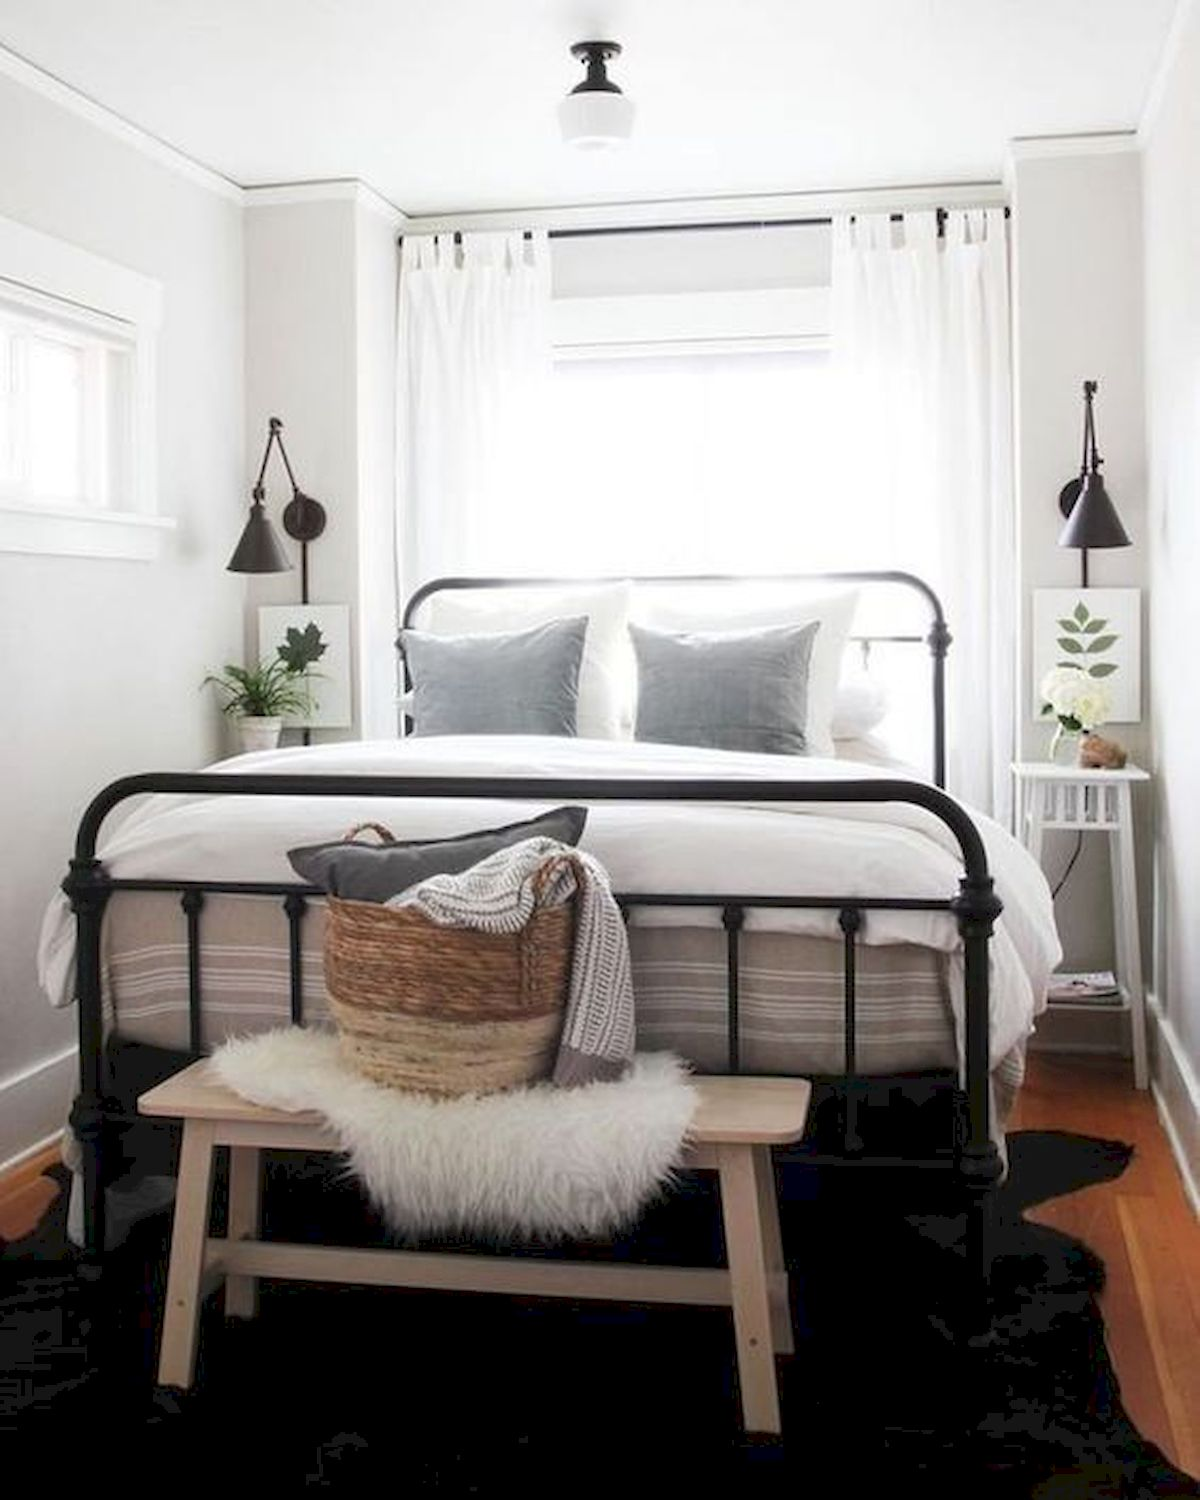 40 Incredible Modern Bedroom Design Ideas That Will Be Relax Place (28)